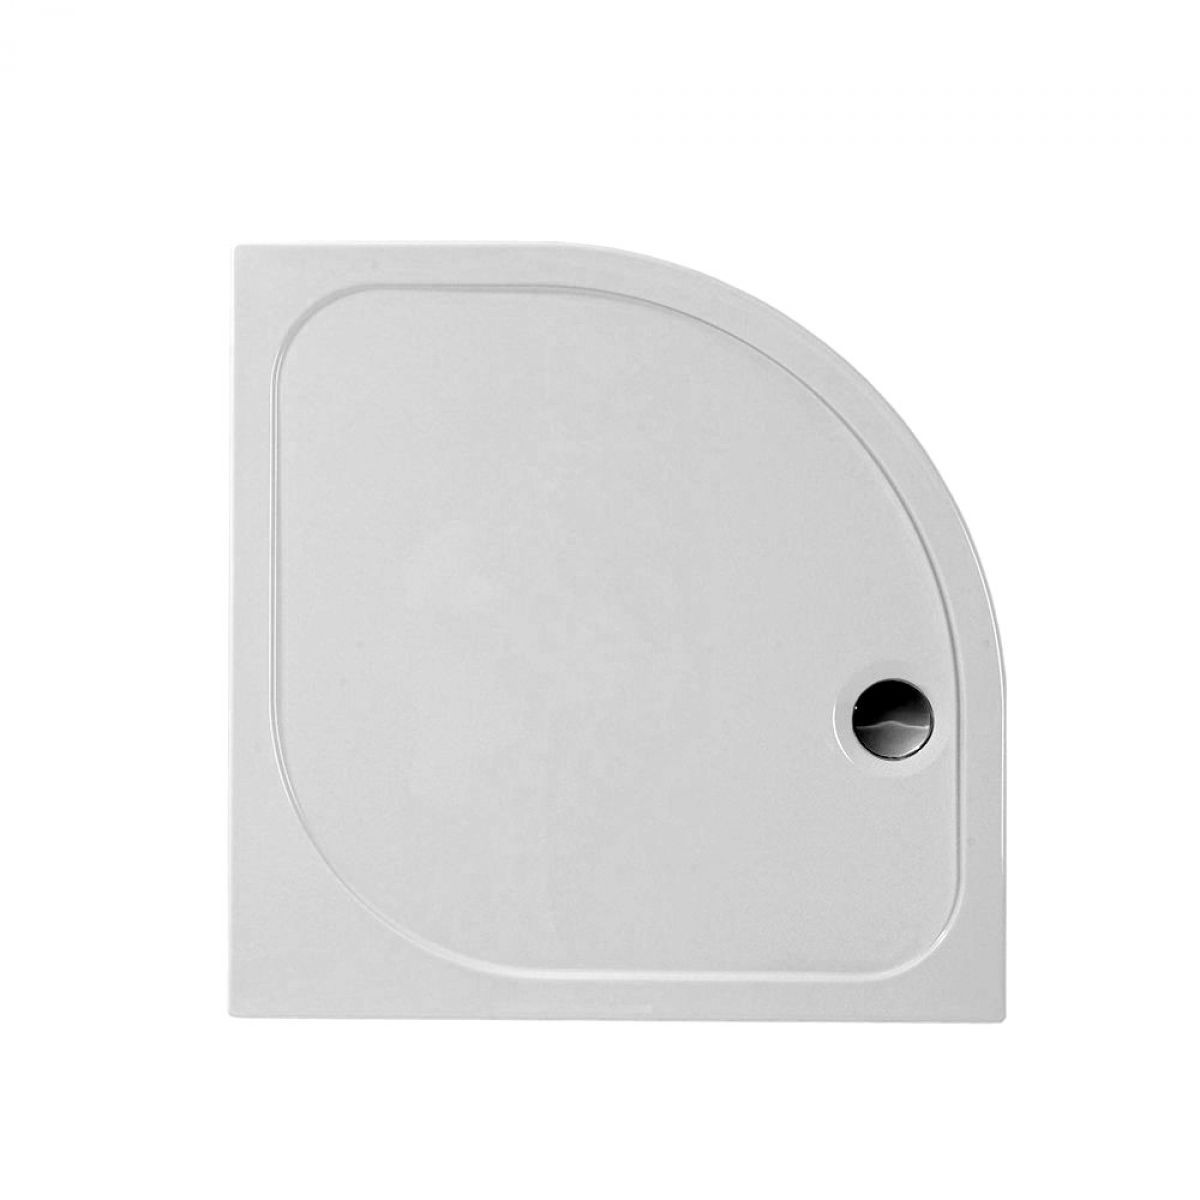 Merlyn MStone 45mm Low Profile Quadrant Shower Tray